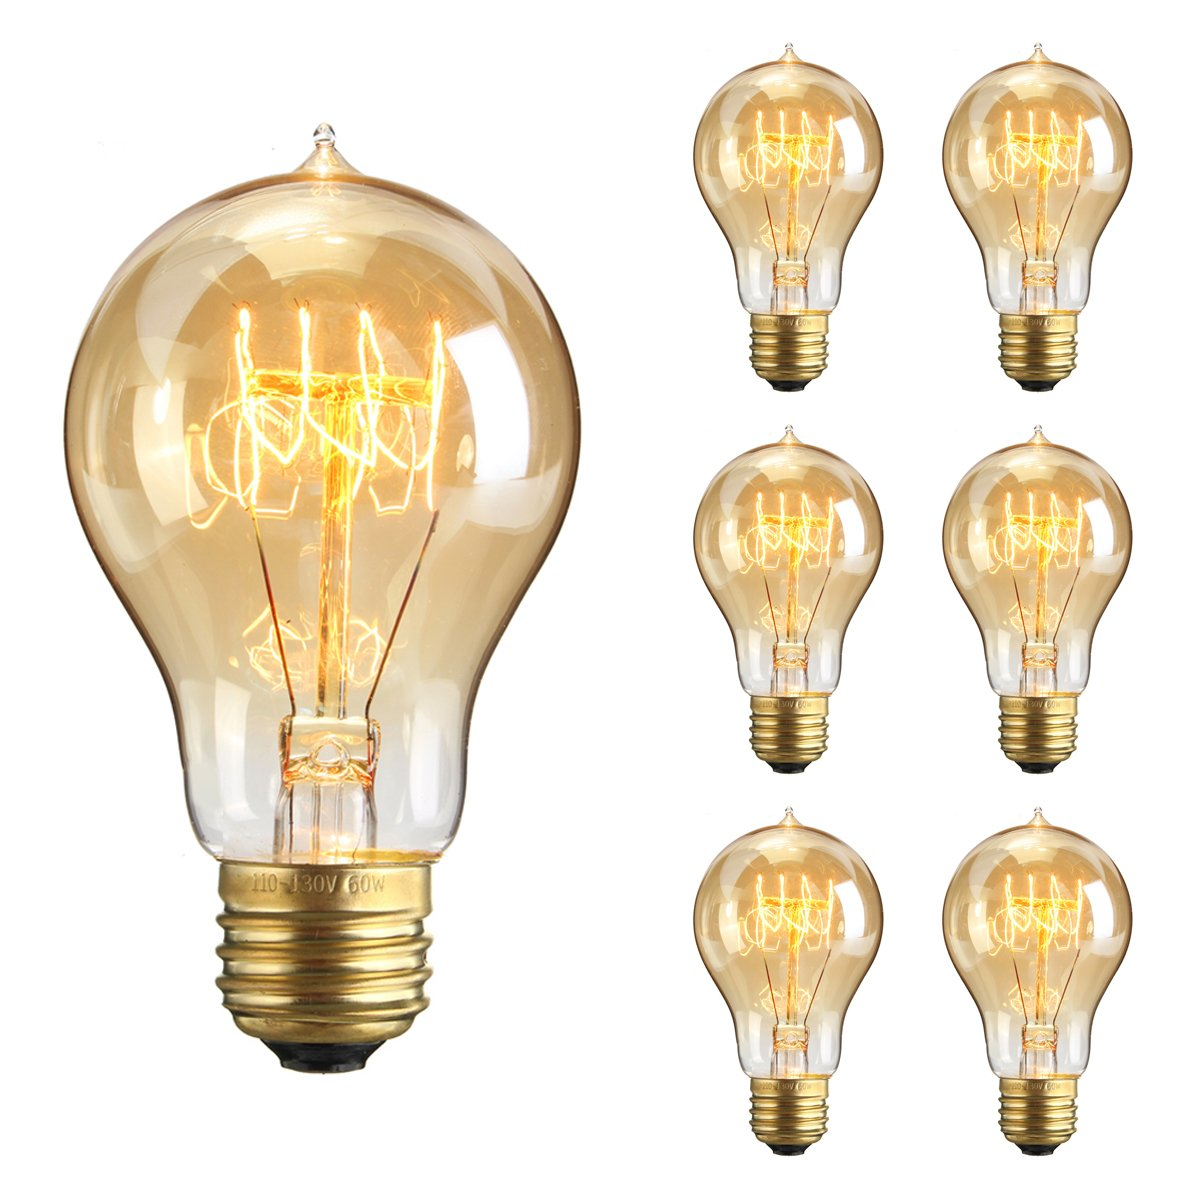 Kingso 6packs vintage edison bulbs 60w a19 squirrel cage filament kingso 6packs vintage edison bulbs 60w a19 squirrel cage filament incandescent antique dimmable light bulb for home light fixtures e27 base 110v 23 anchors arubaitofo Image collections